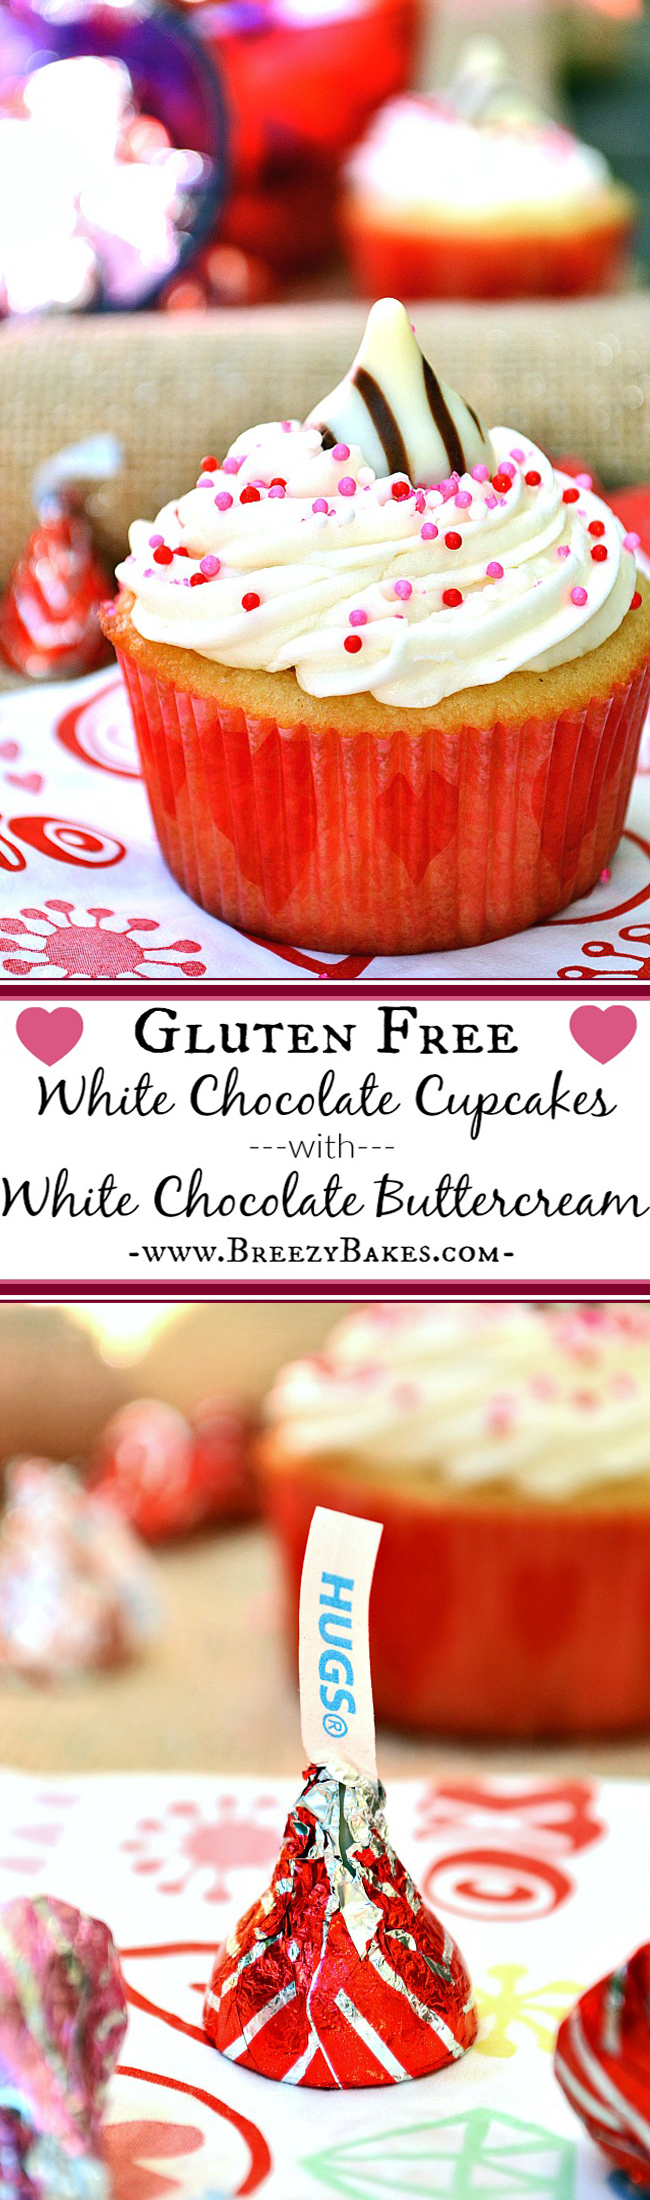 Celebrate the day of love...or any other day for that matter...with these sensationally sweet and tasty Gluten Free White Chocolate Cupcakes with White Chocolate Buttercream. And plus, sprinkles make every kid happy.